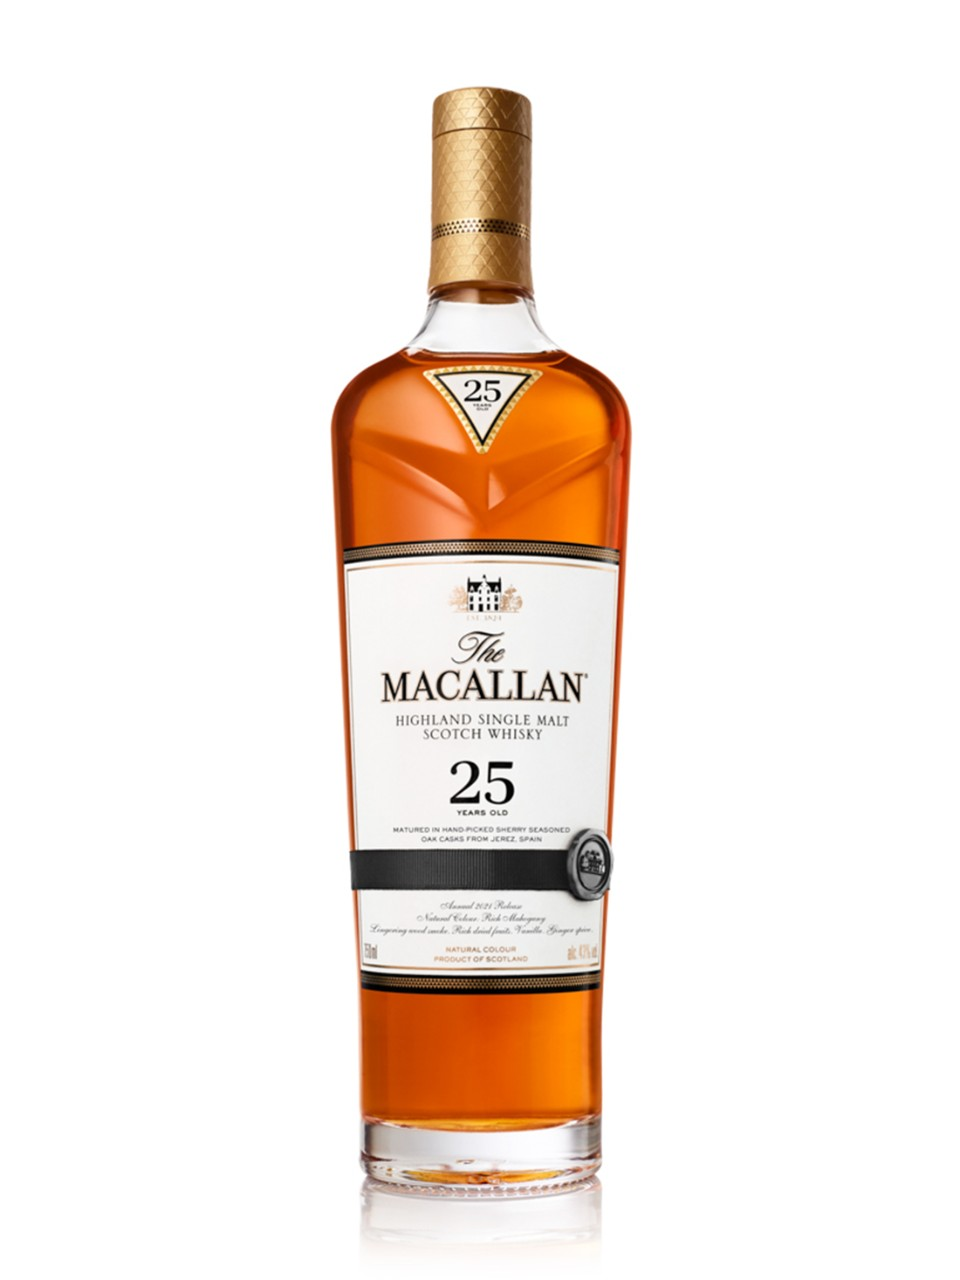 Image for The Macallan Sherry Oak 25-Year-Old Highland Single Malt Scotch Whisky from LCBO